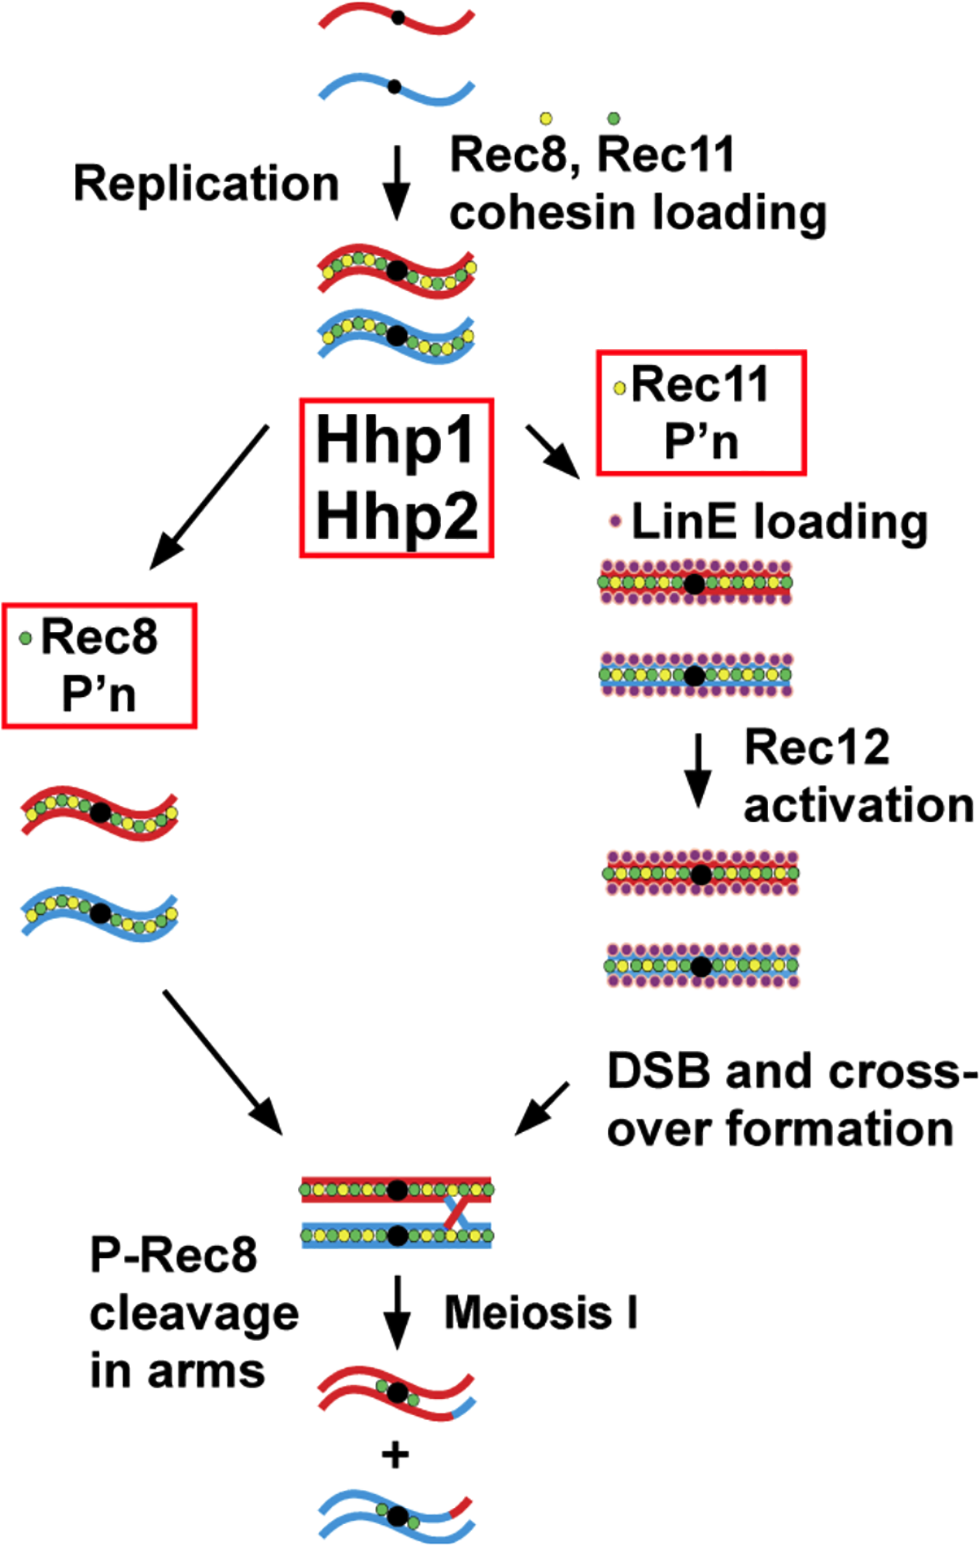 Scheme for dual action of casein kinase 1 (Hhp) on cohesin subunits to regulate meiotic chromosome segregation via Rec8 phosphorylation and to promote linear element formation, meiotic DSB formation, and recombination via Rec11 phosphorylation.